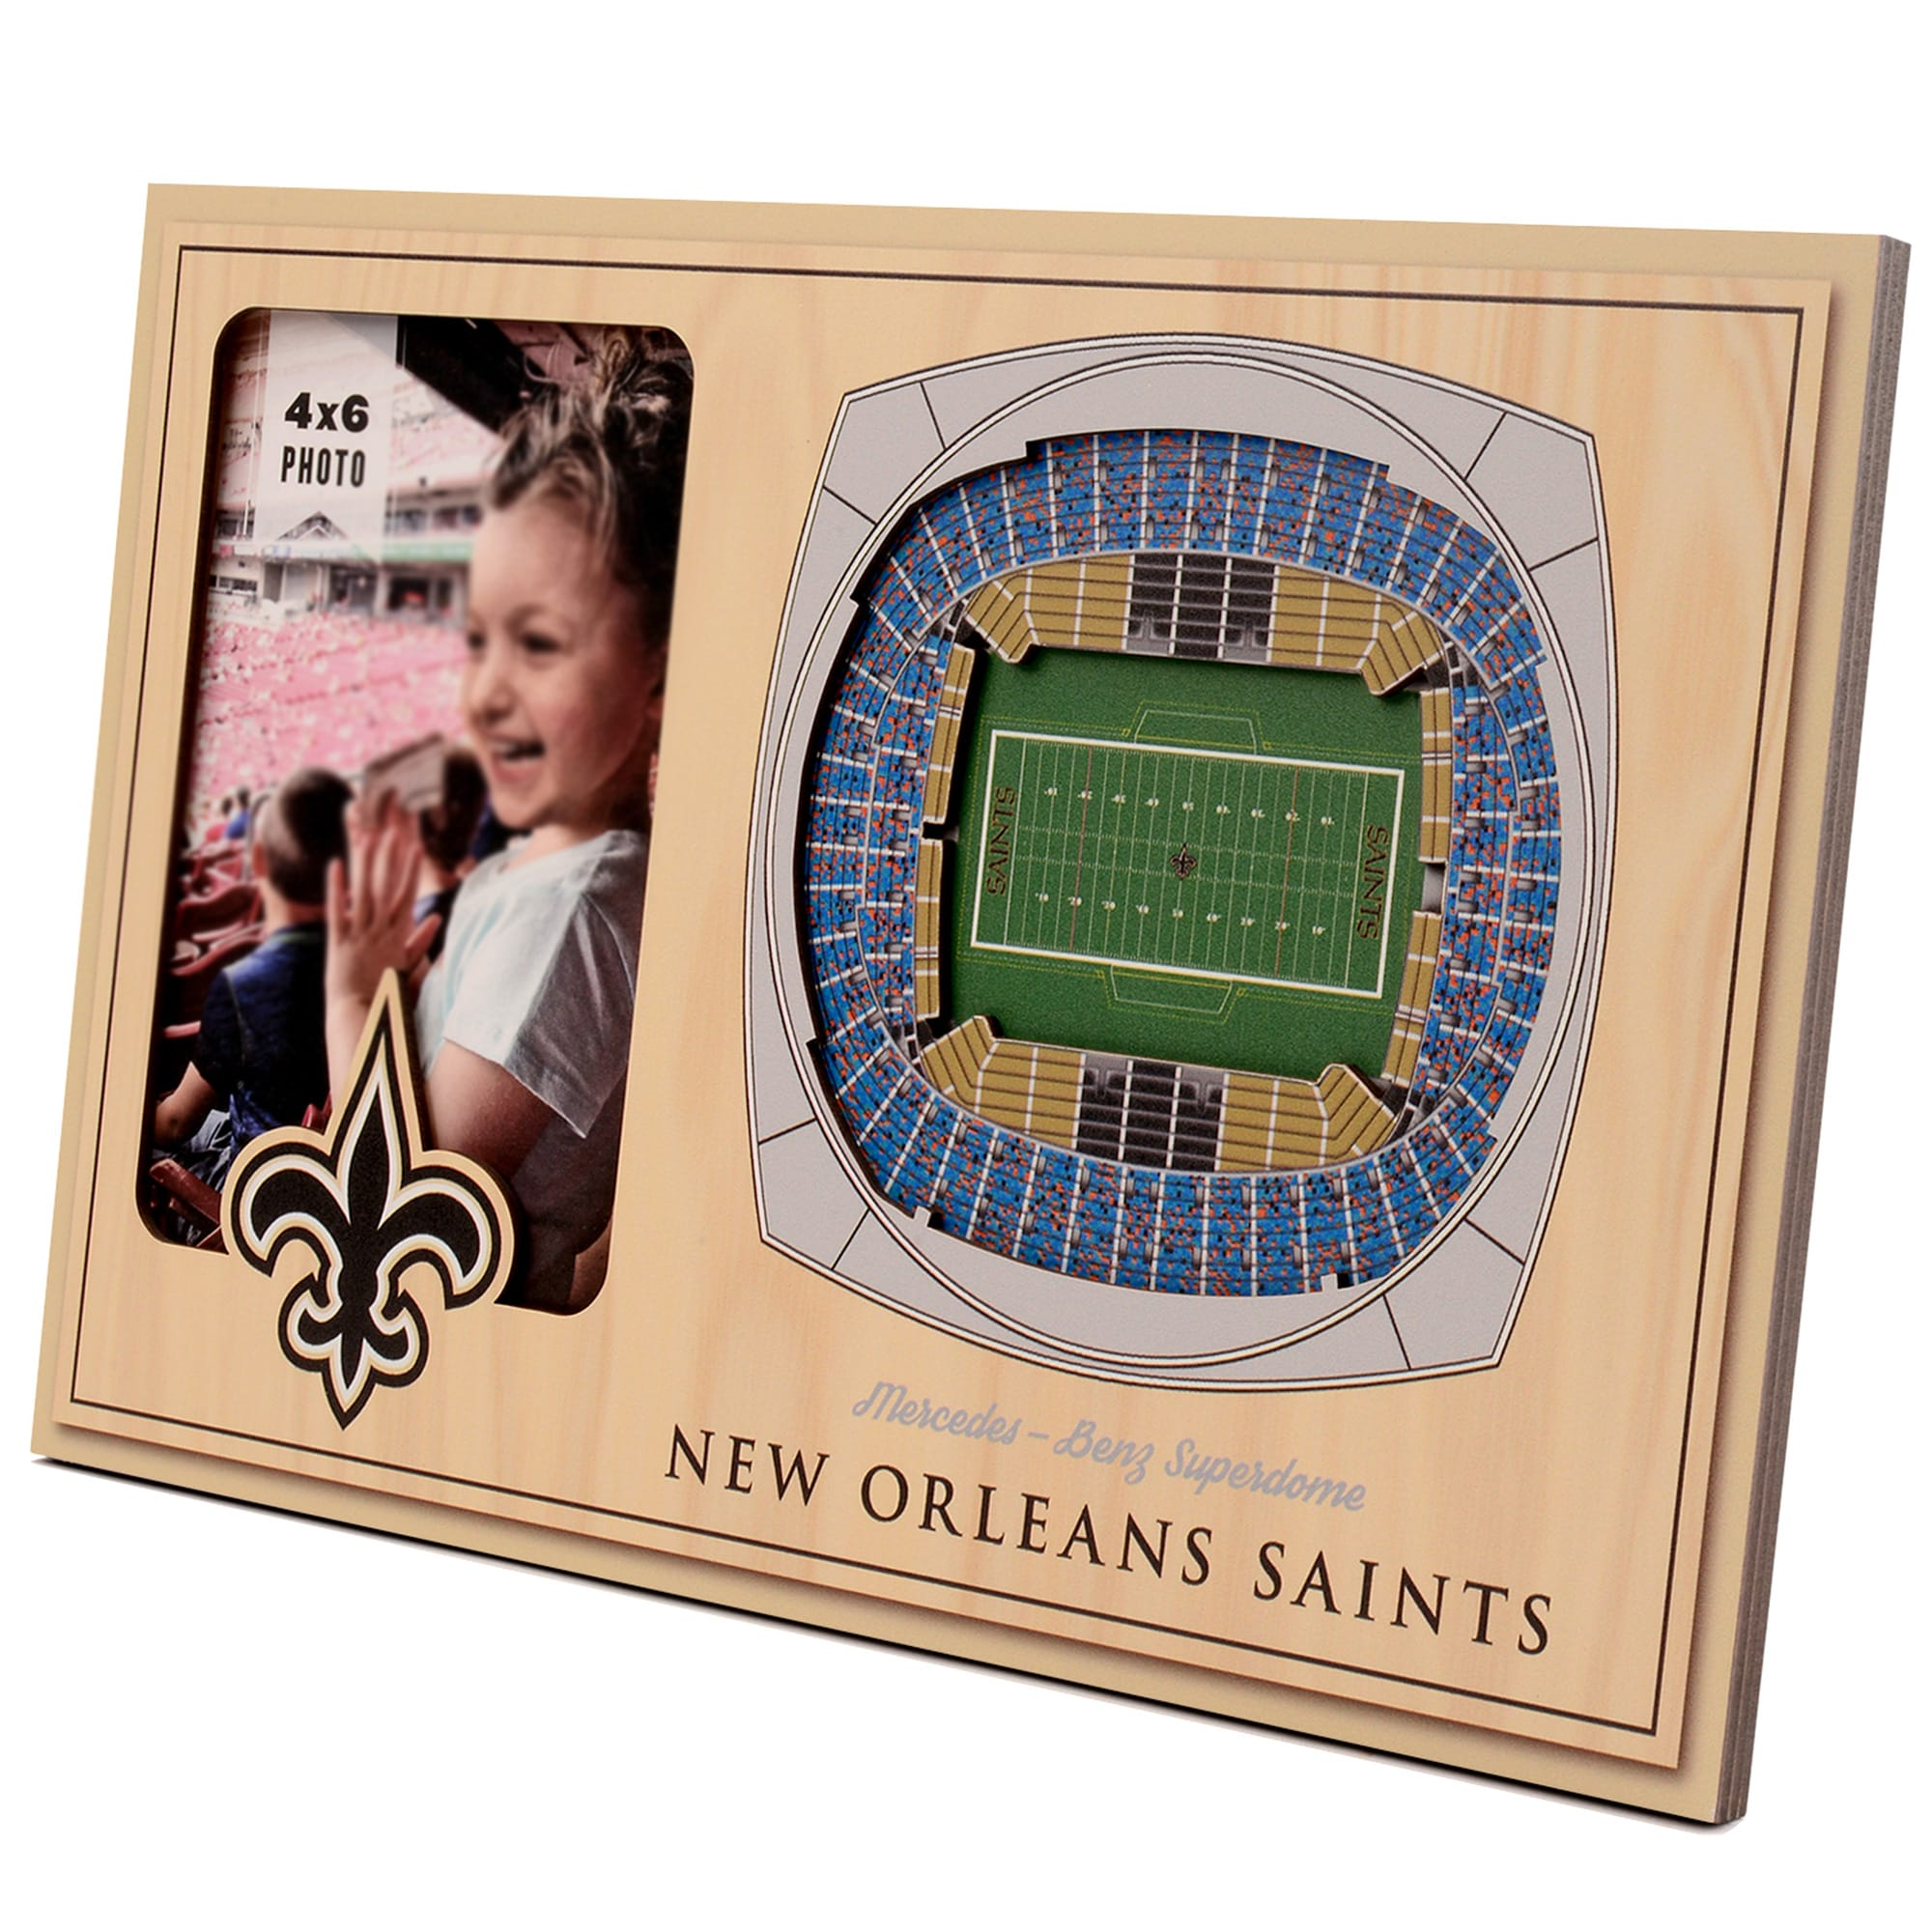 New Orleans Saints 3D StadiumViews Picture Frame - Brown